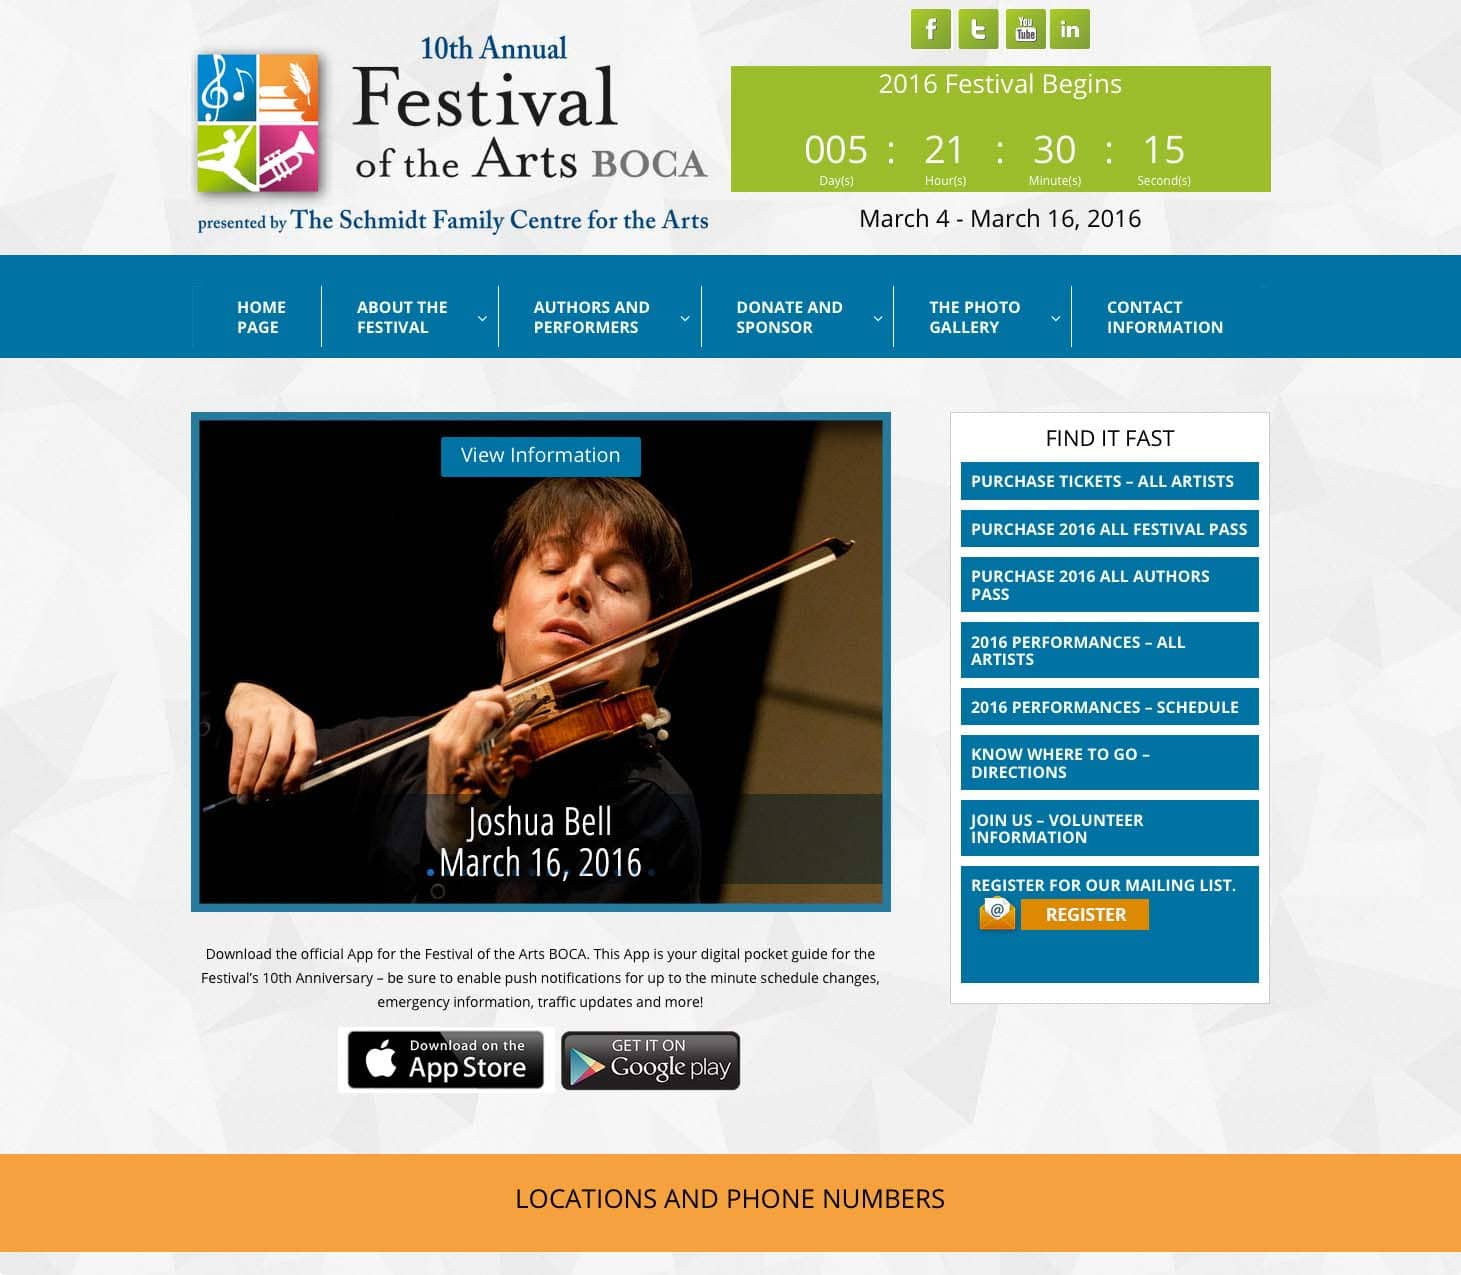 Festival of the Arts BOCA home page